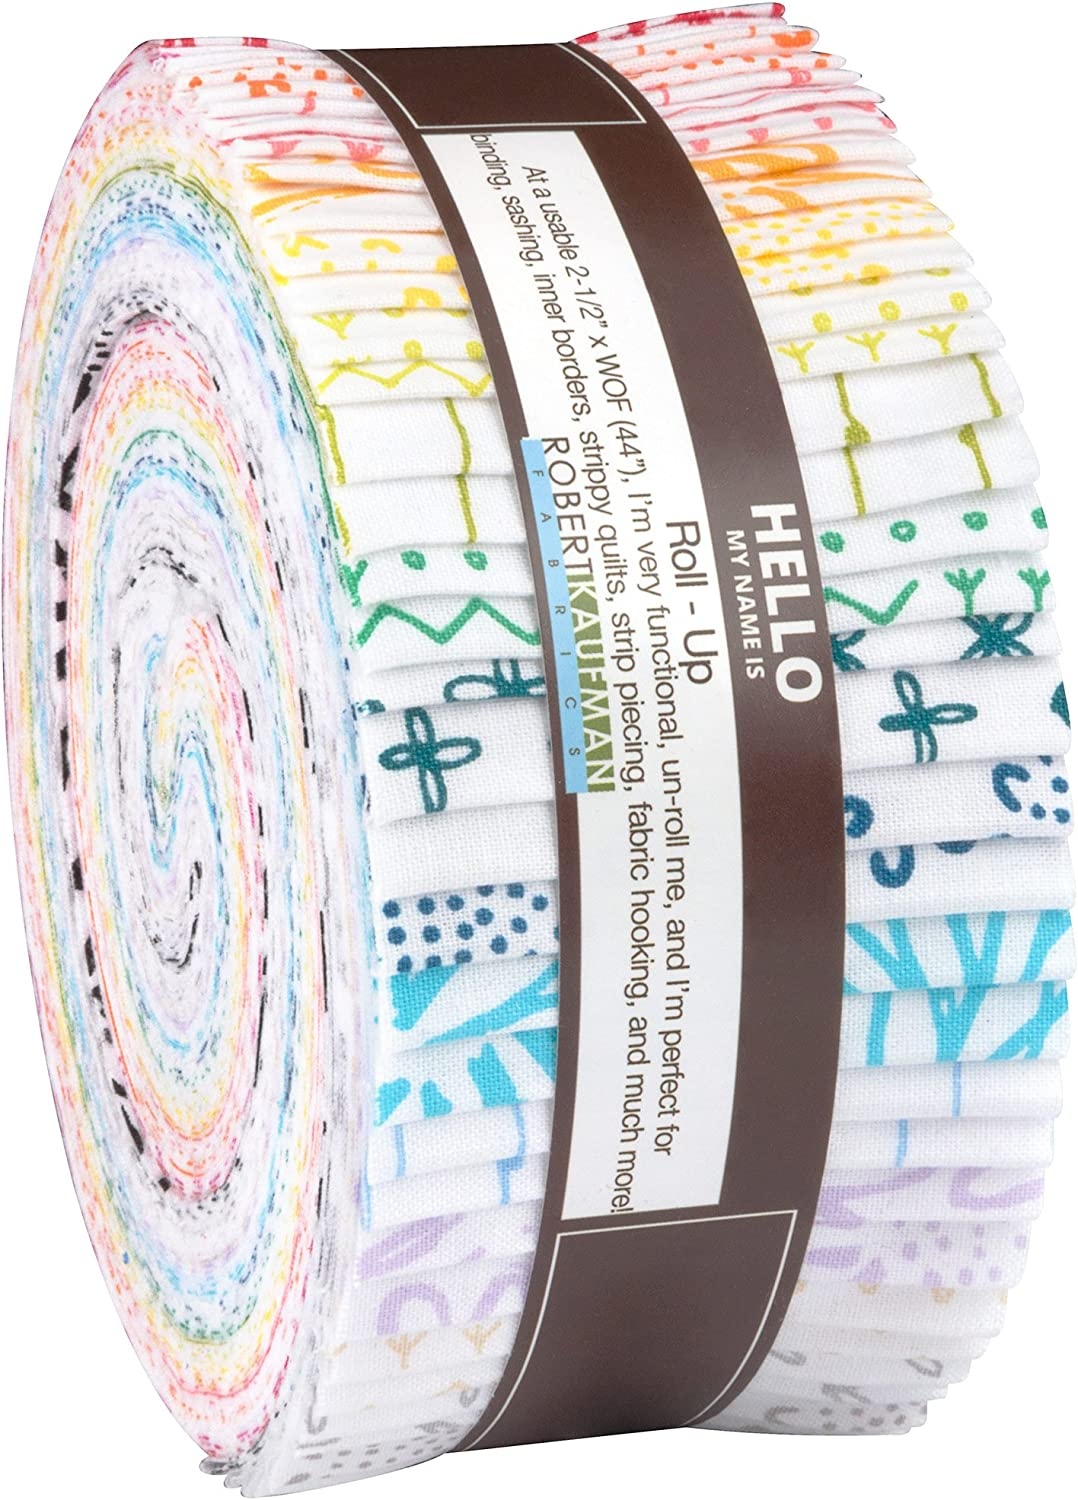 Karen Lewis Blueberry Park Low Volume Roll Up 40 2.5-inch Strips Jelly Roll Robert Kaufman RU-637-40